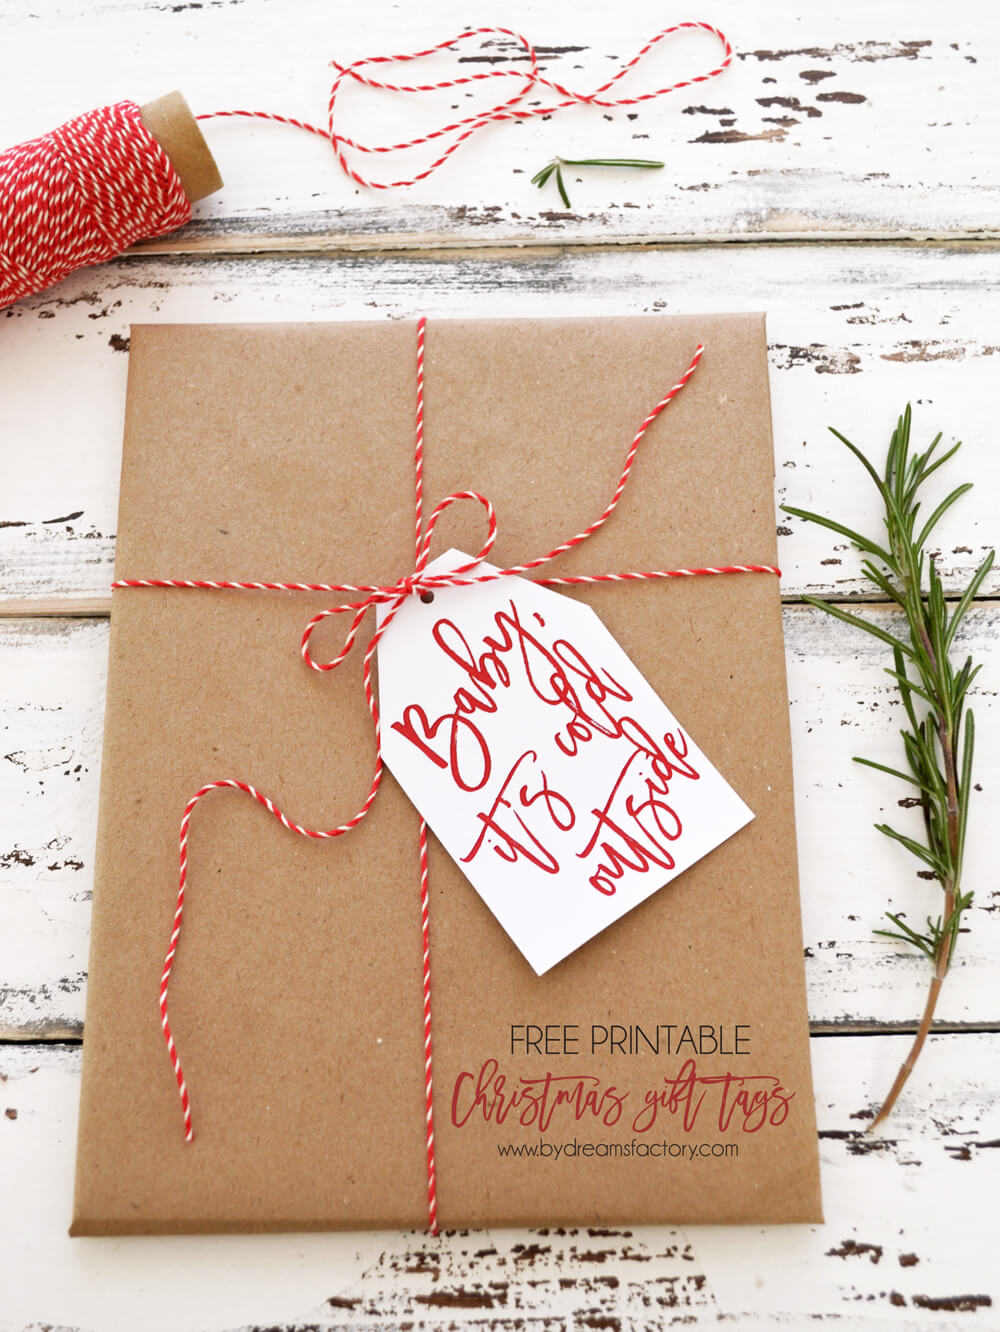 last minute christmas printables red tag dreams factory